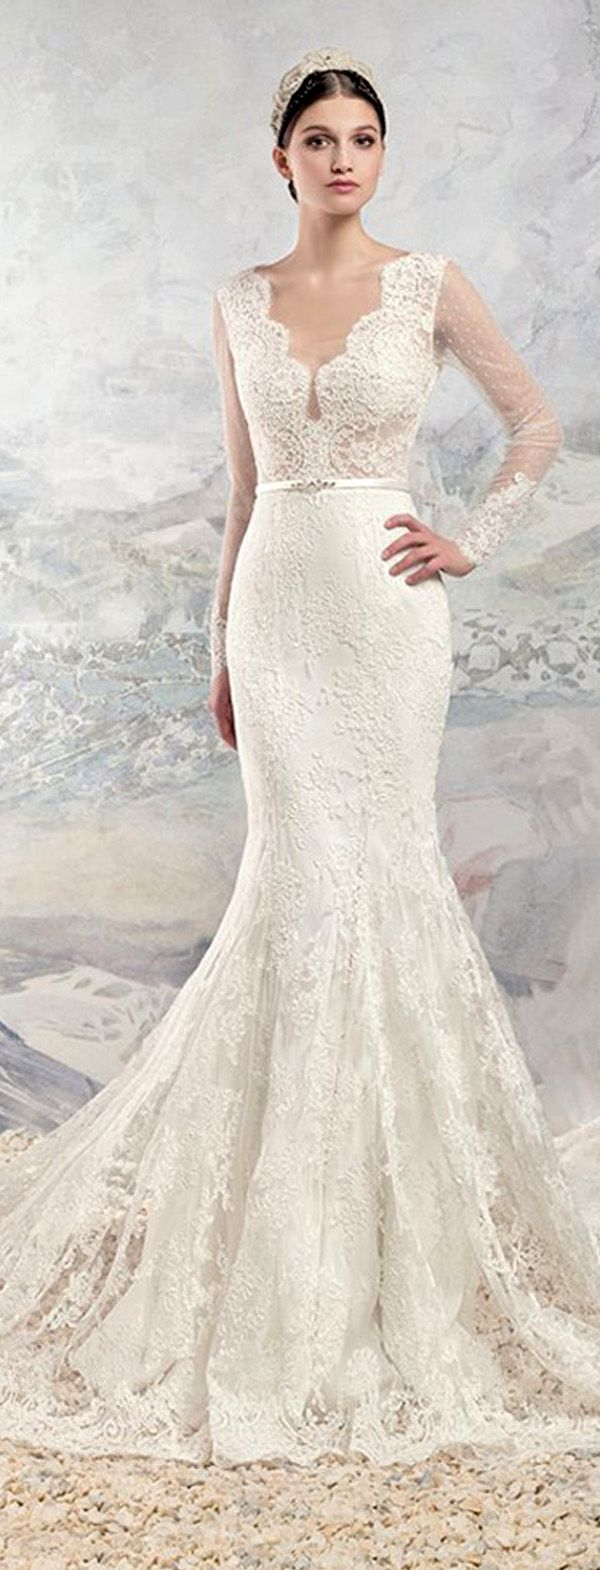 1000 images about dressilyme wedding on pinterest for Dressilyme wedding dress